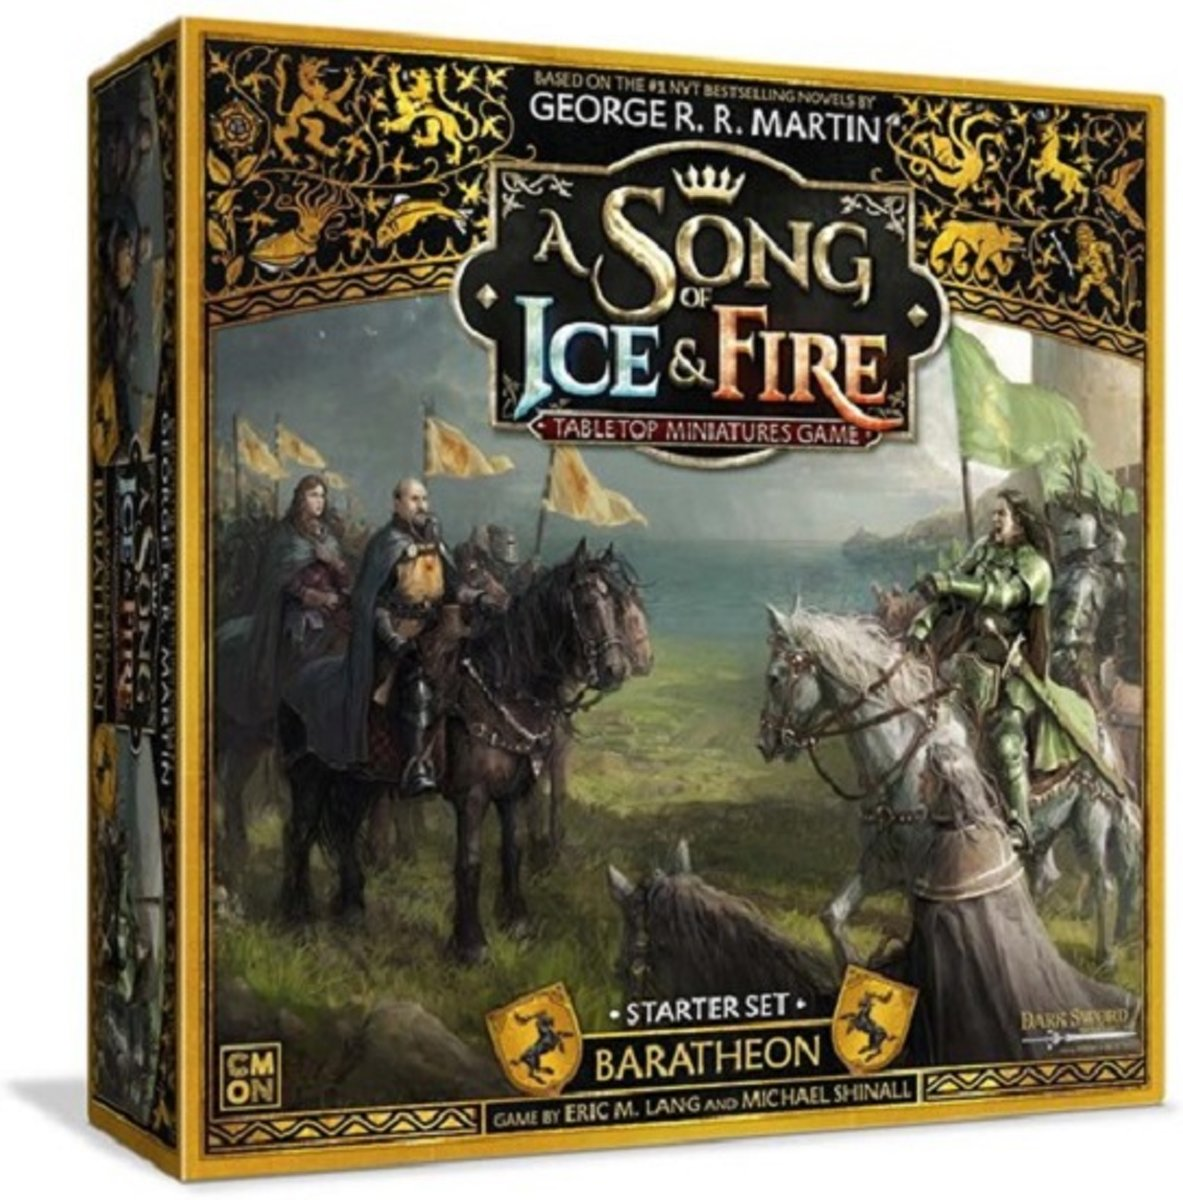 A Song of Ice and Fire Starter set Baratheon